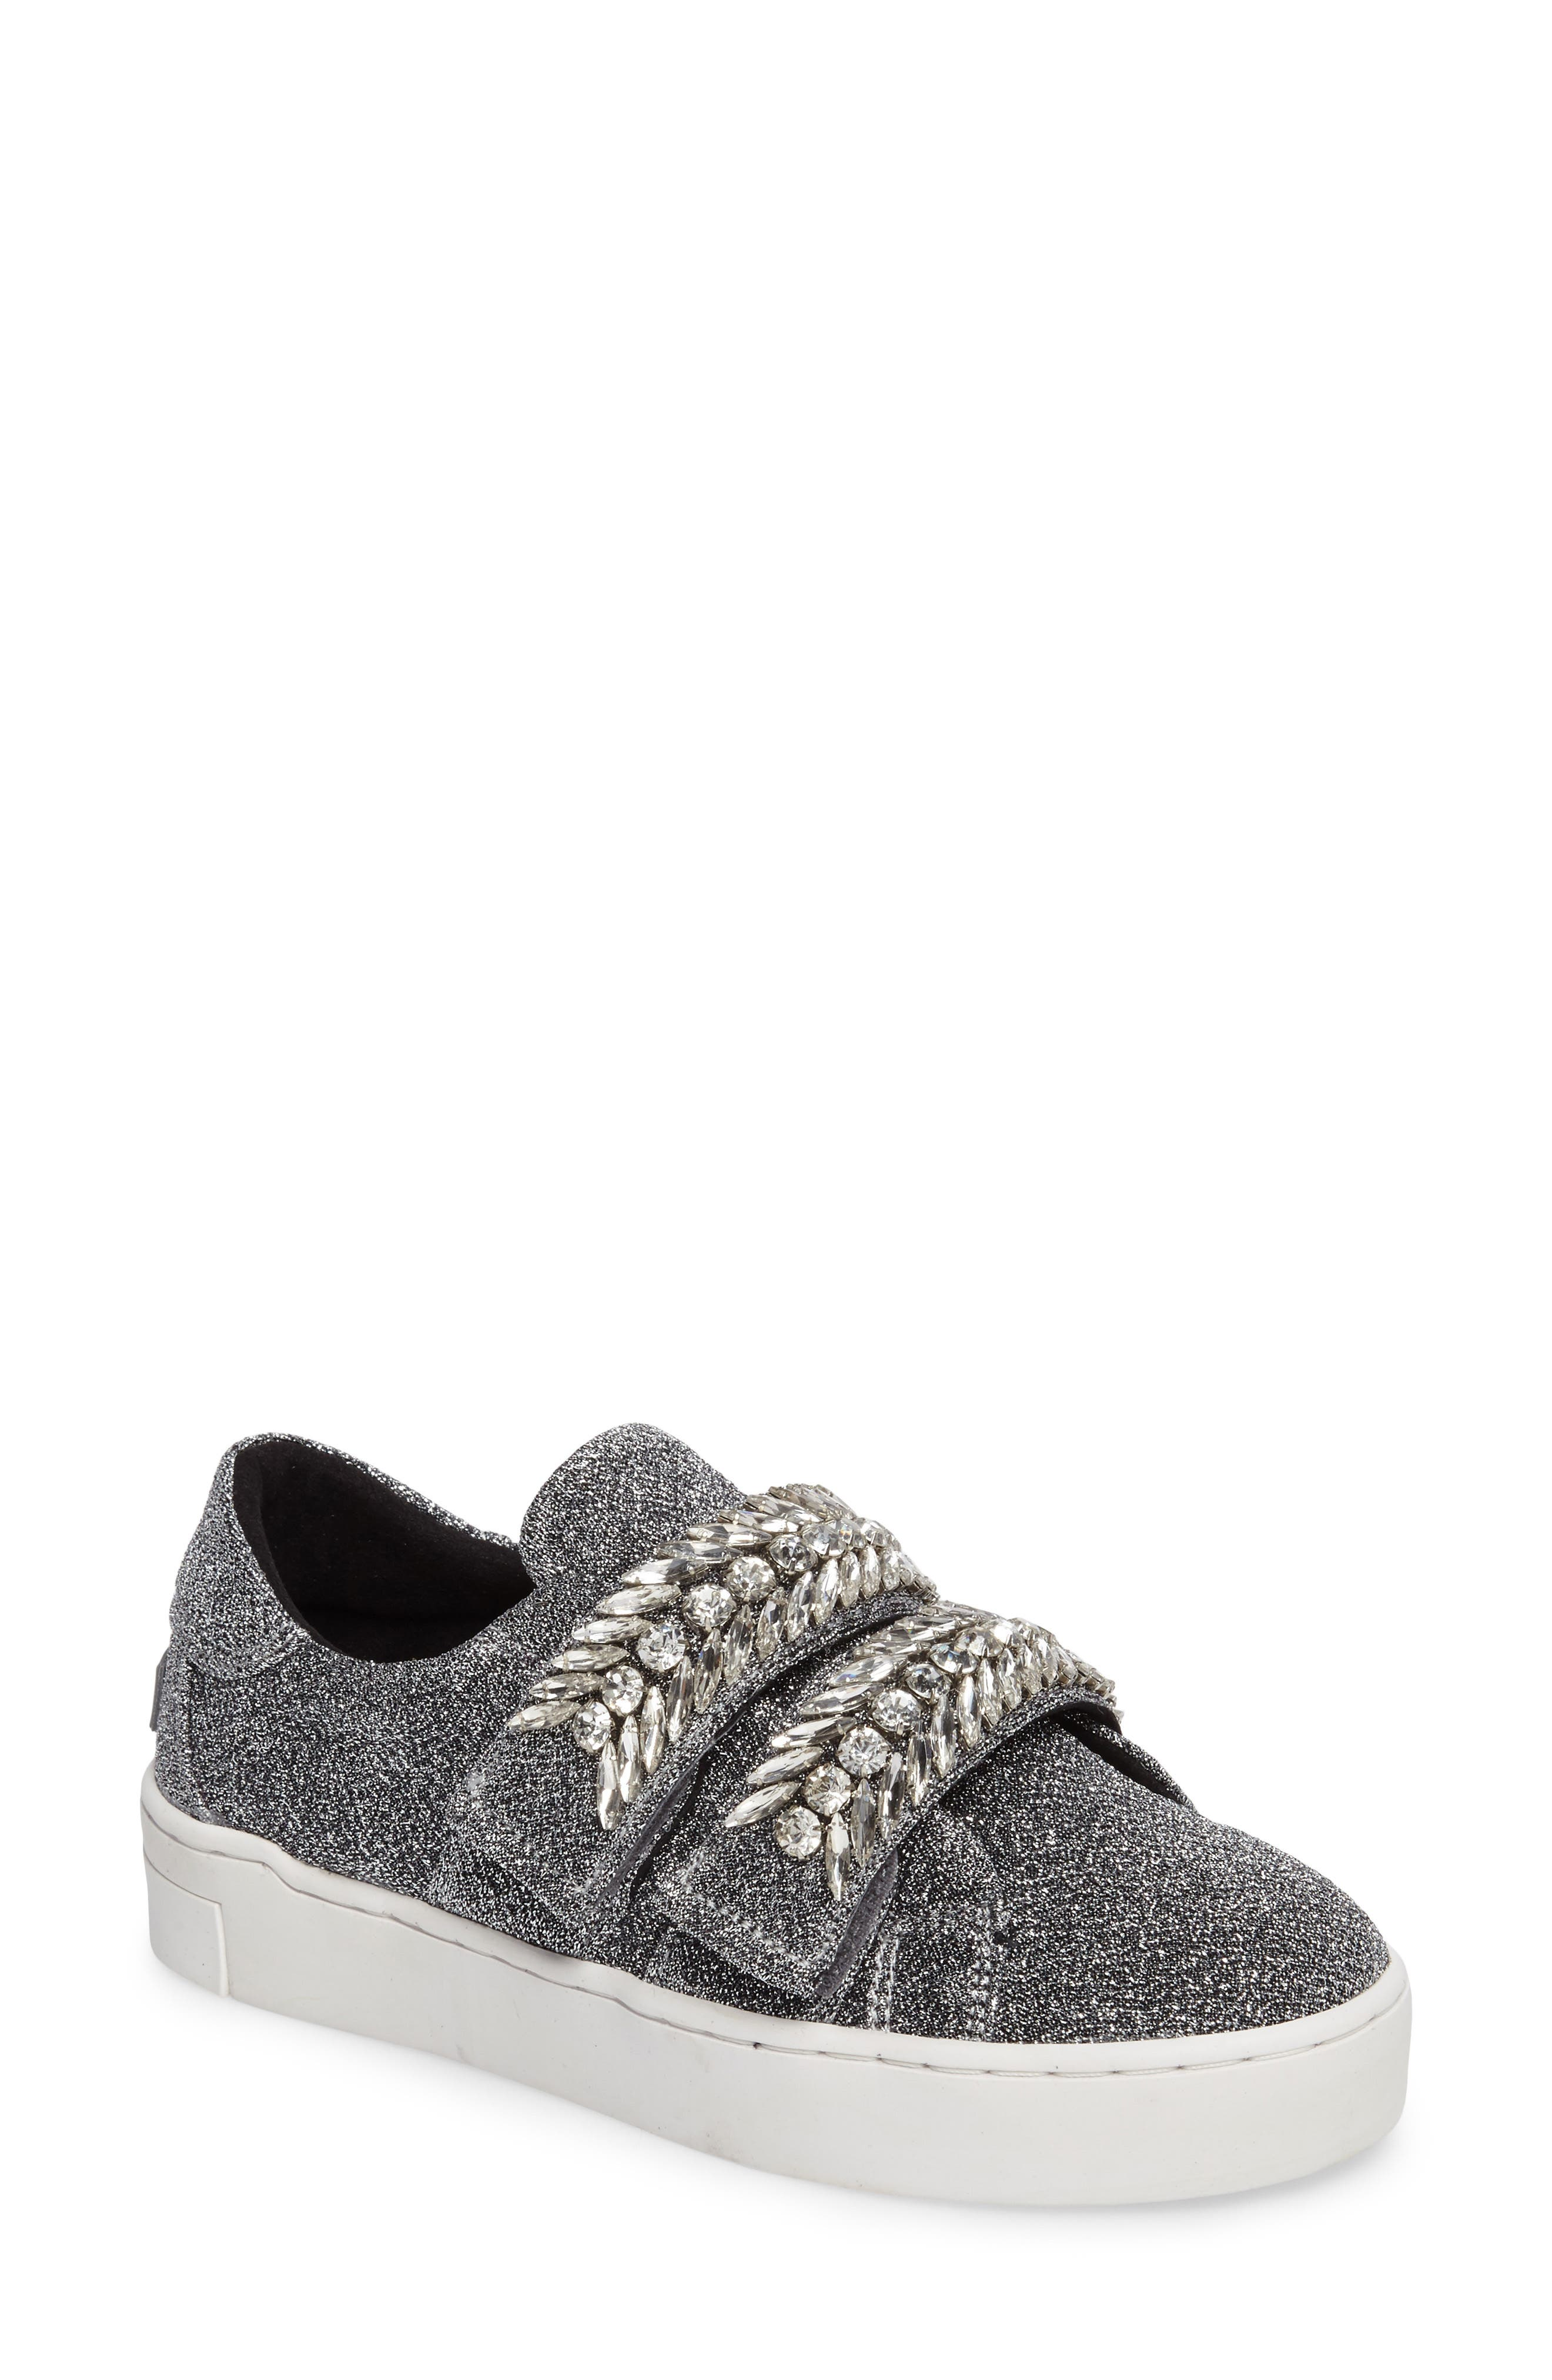 Crystal Embellished Sneaker,                         Main,                         color, Silver